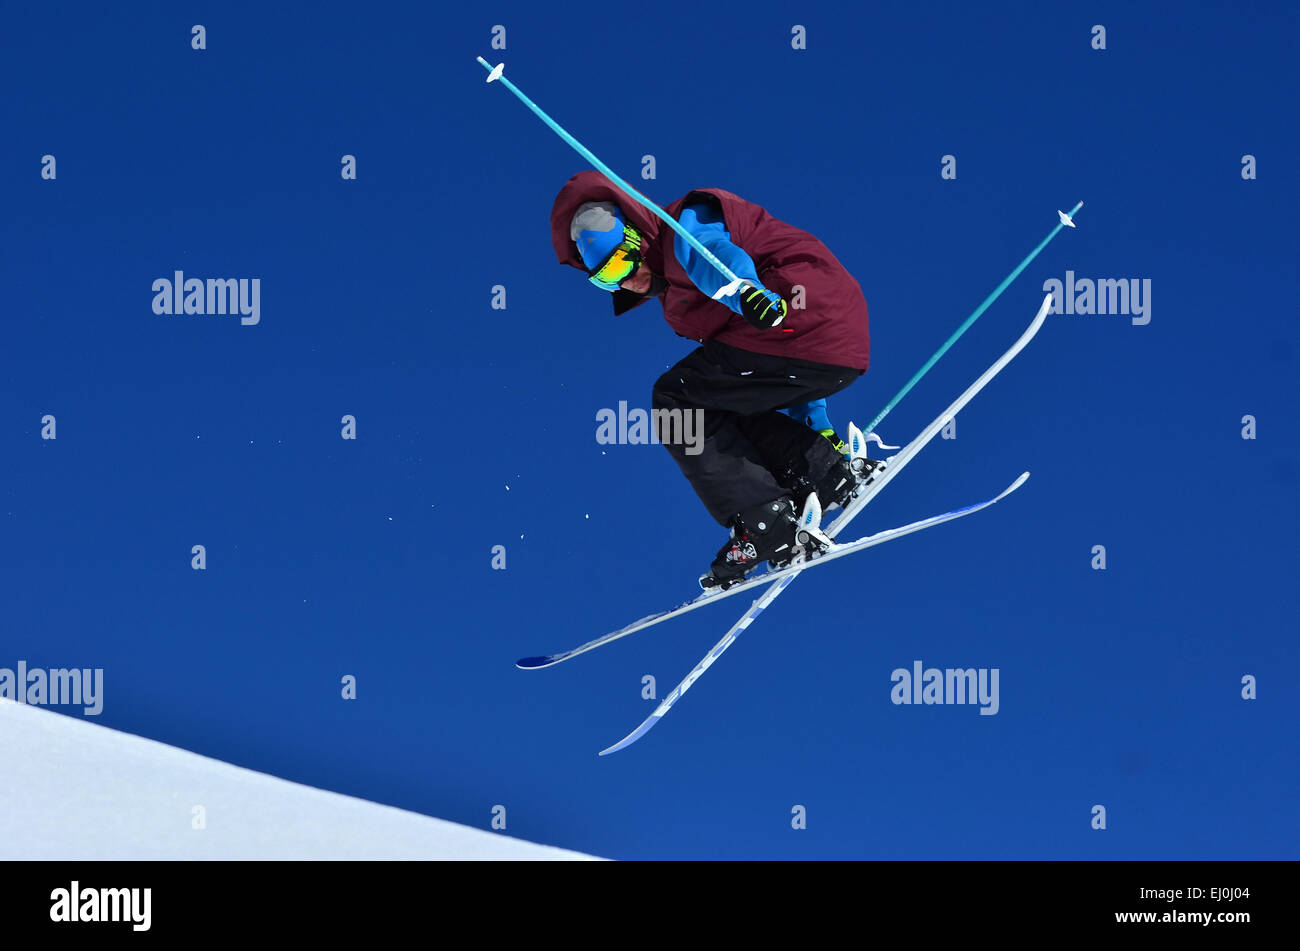 VERBIER, SWITZERLAND - FEBRUARY 21: Freestyle skier peforming a grab and spin stunt:   February 21, 2014 in Verbier, - Stock Image